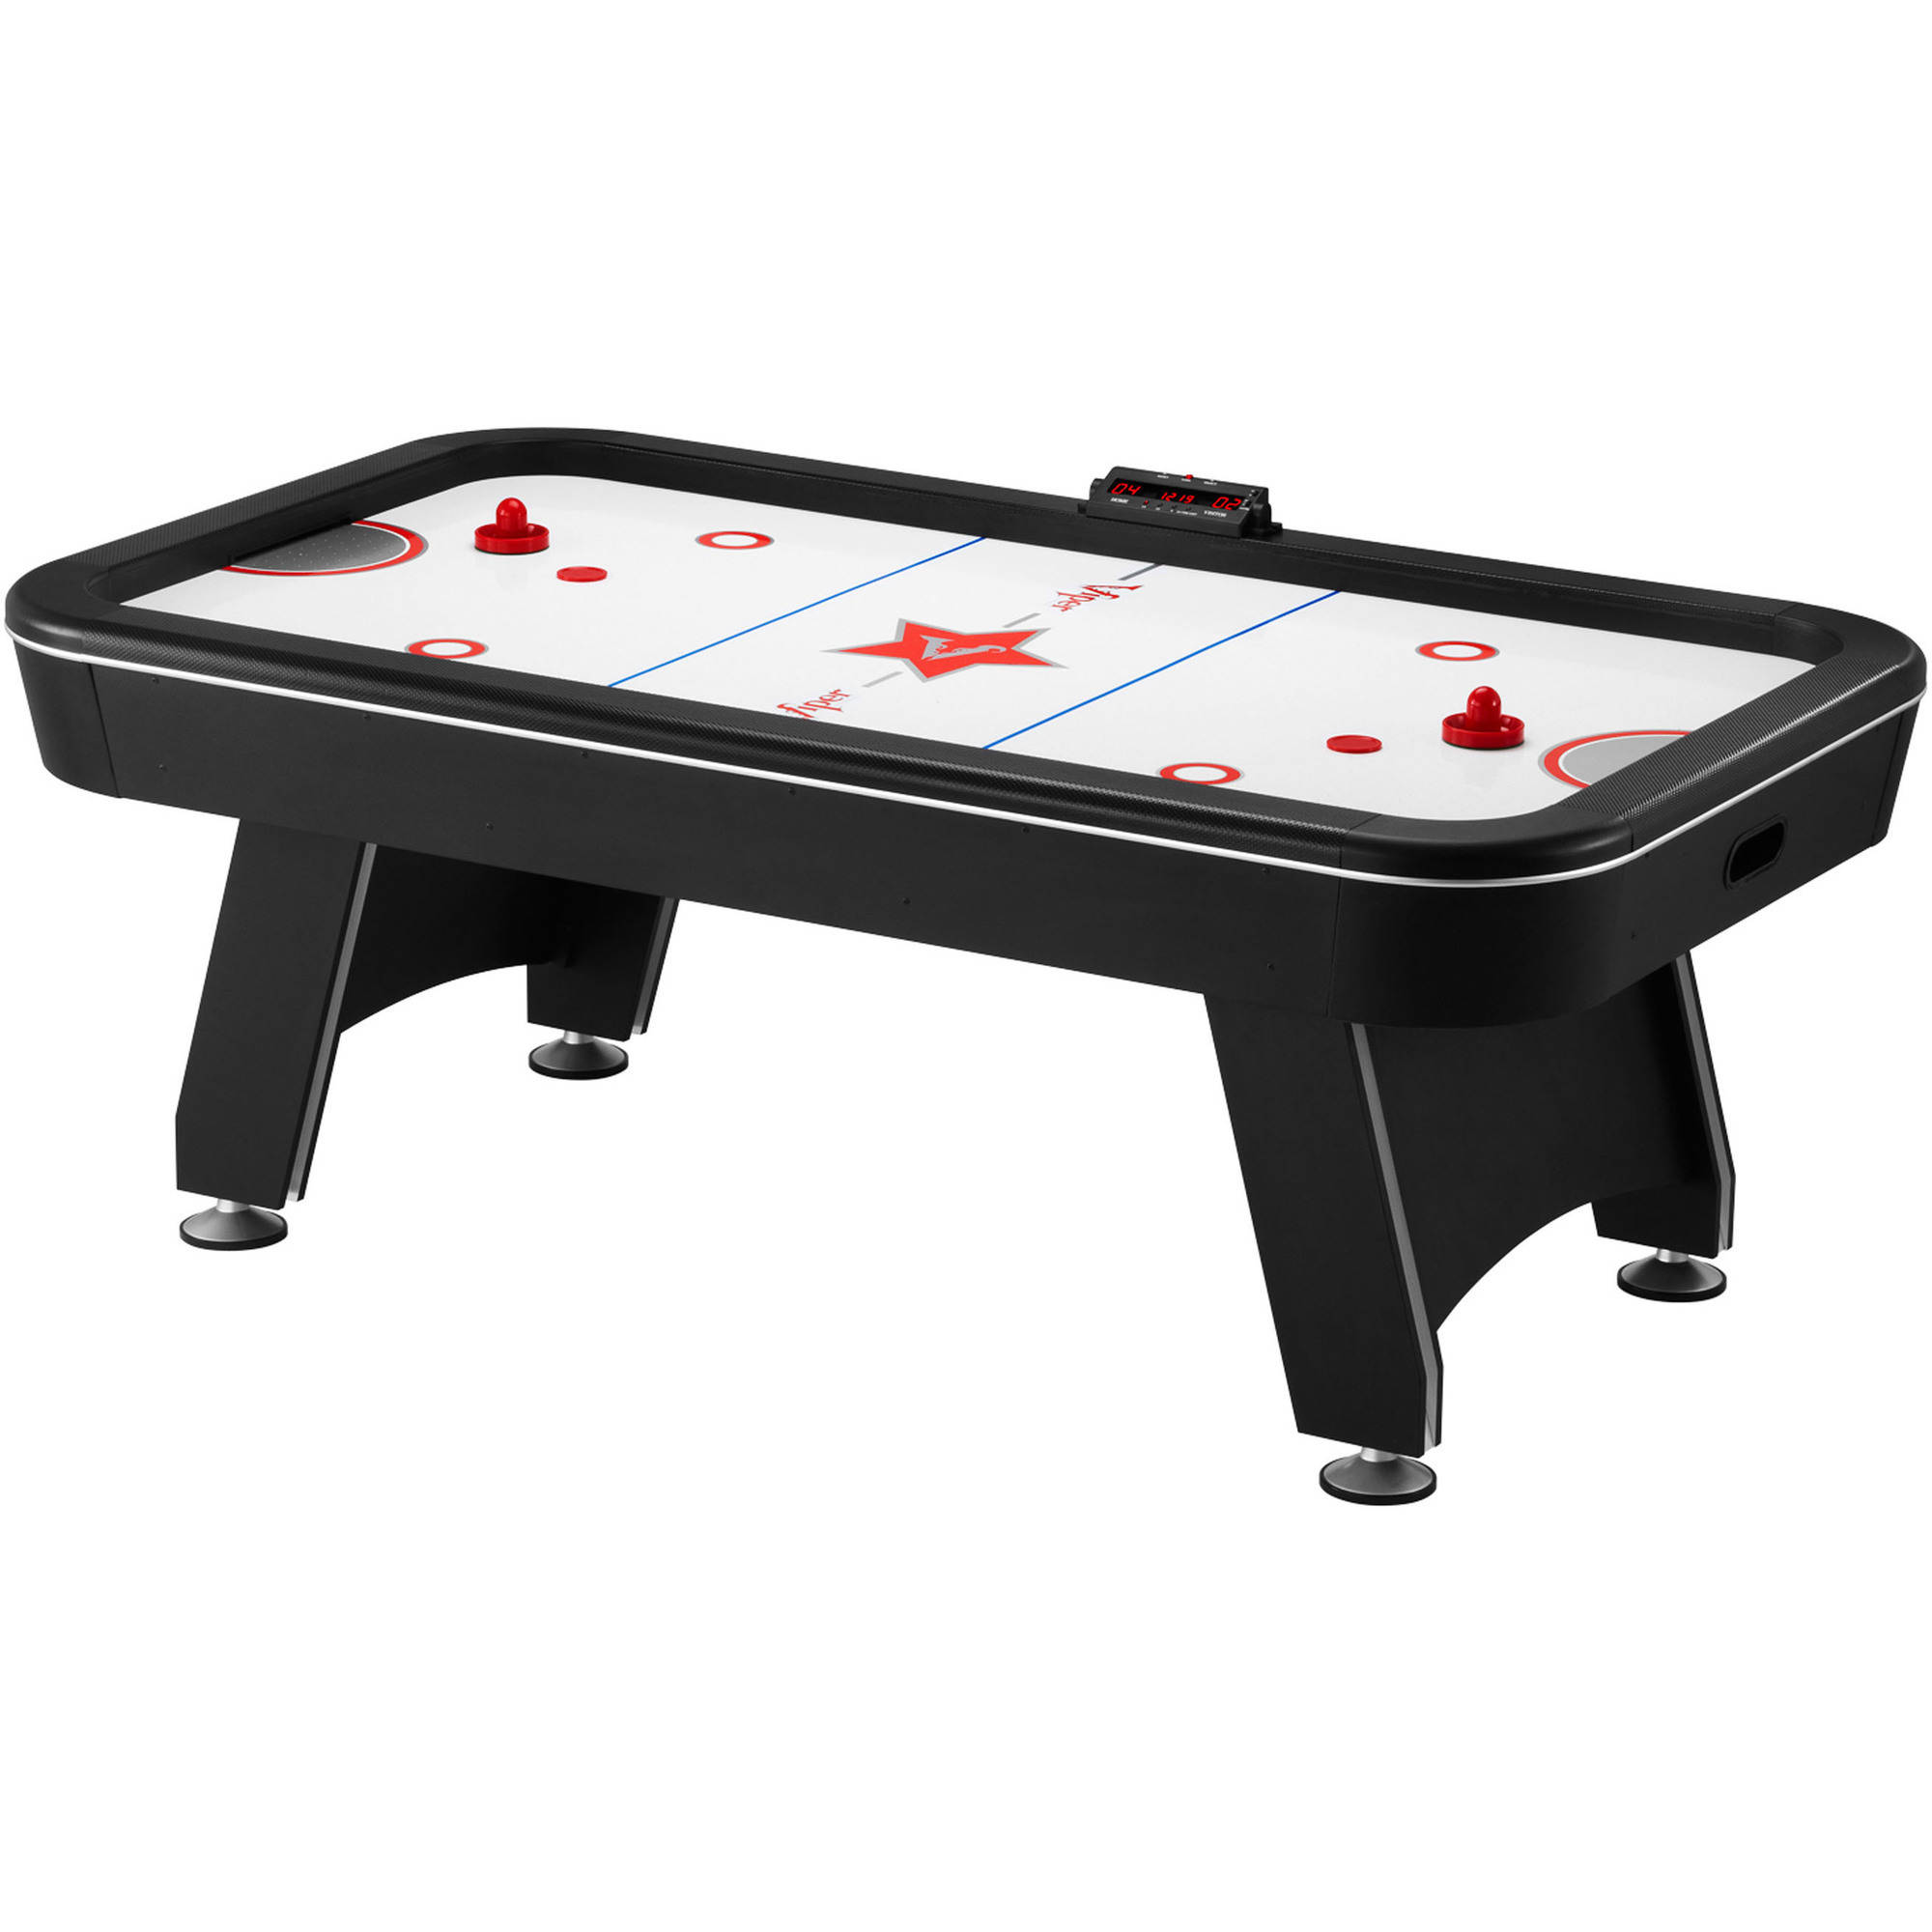 "Viper Arctic Ice Air-Powered Hockey Table, 84""L x 32""W x 48""H"